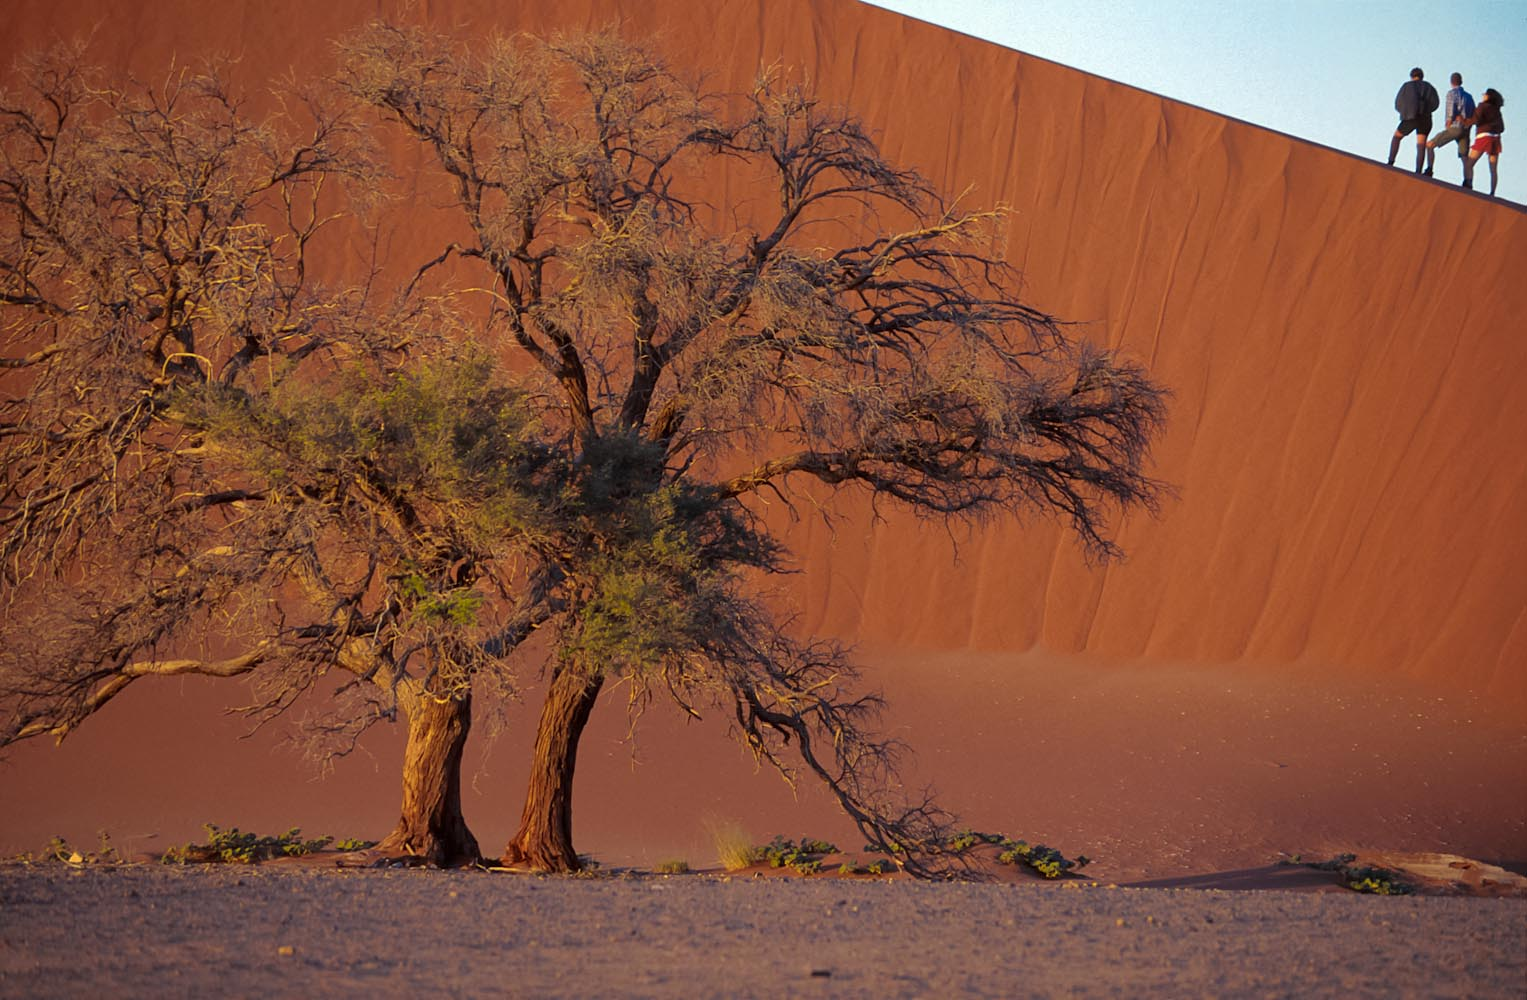 (c) Charles Sturge photographer - The Namib, oldest desert in the world, Namibia